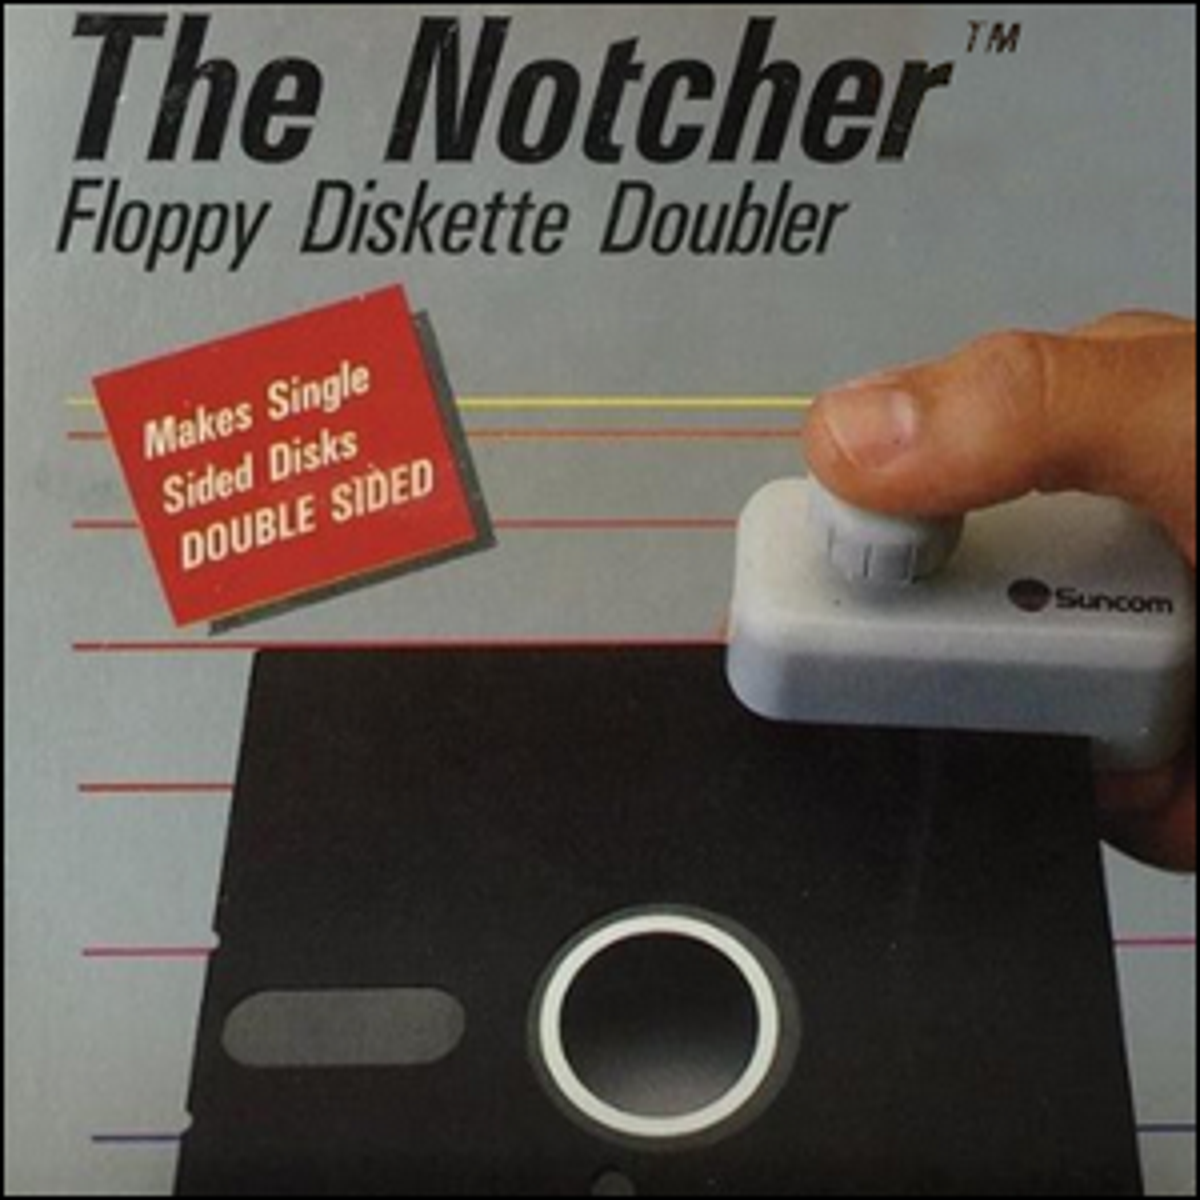 The front of the box for The Notcher Floppy Diskette Doubler.